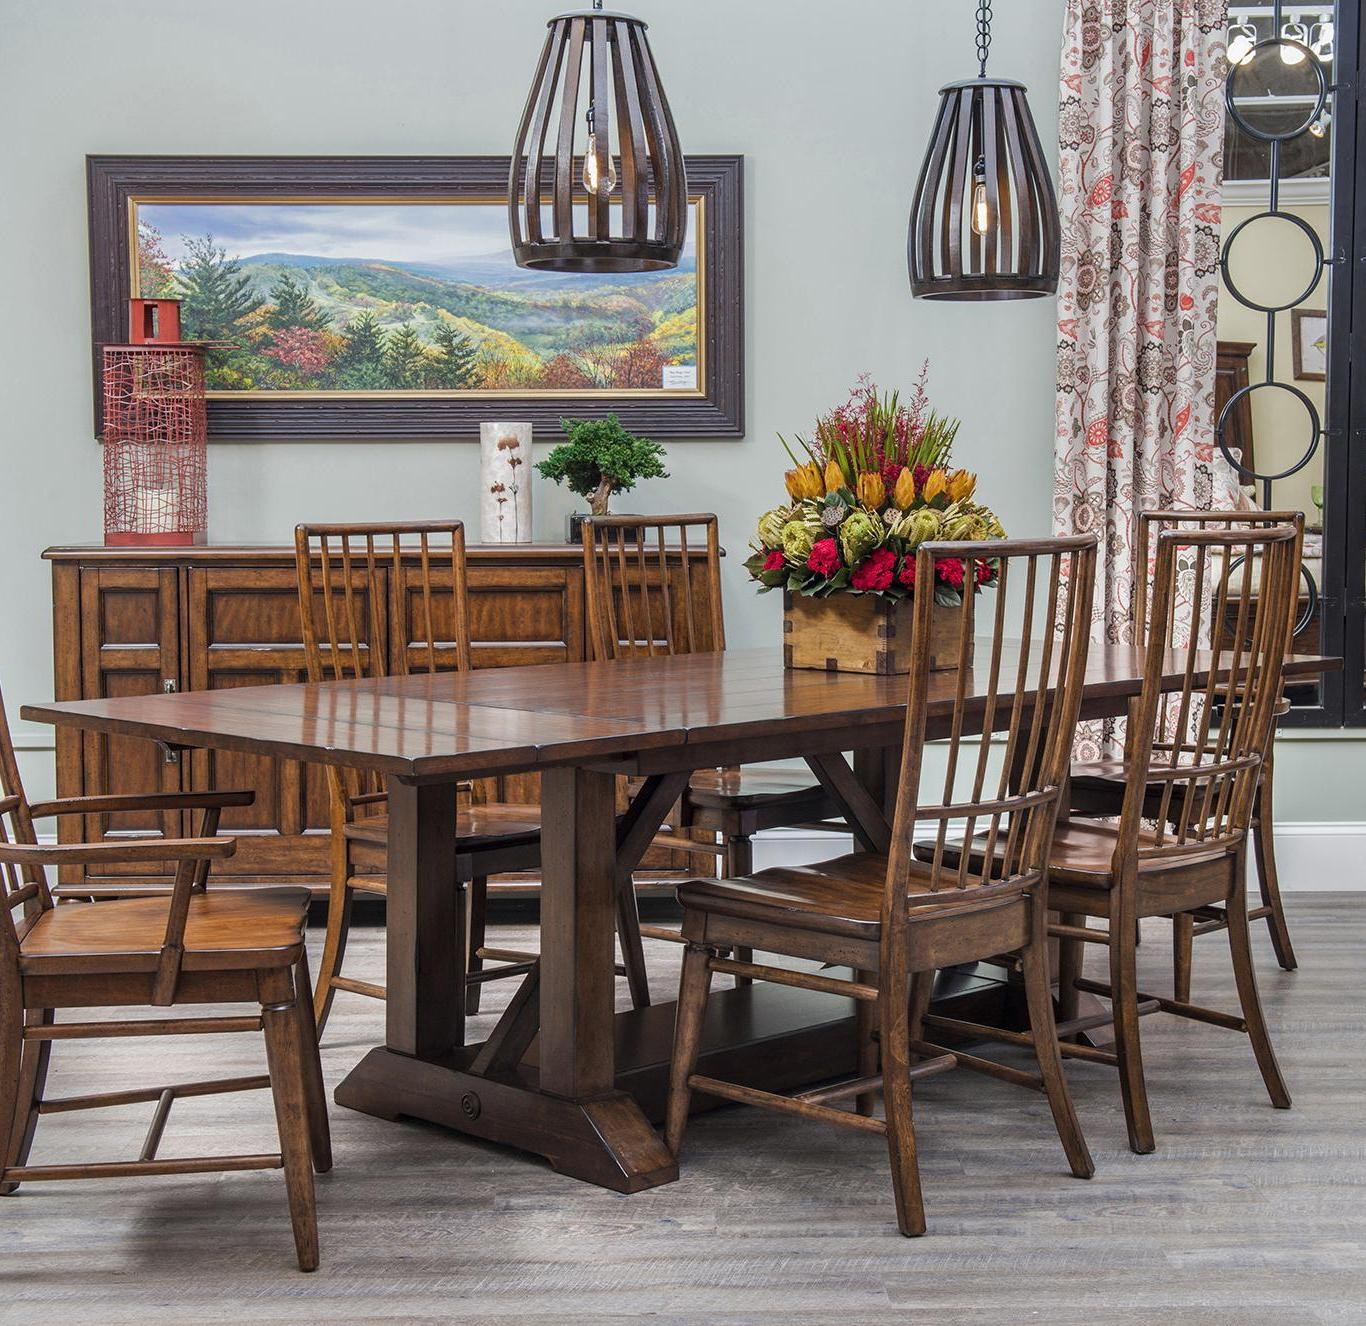 Carolina Preserves by Klaussner Blue Ridge 5 Piece Trestle Dining Table Set & Carolina Preserves by Klaussner Blue Ridge 5 Piece Trestle Dining ...